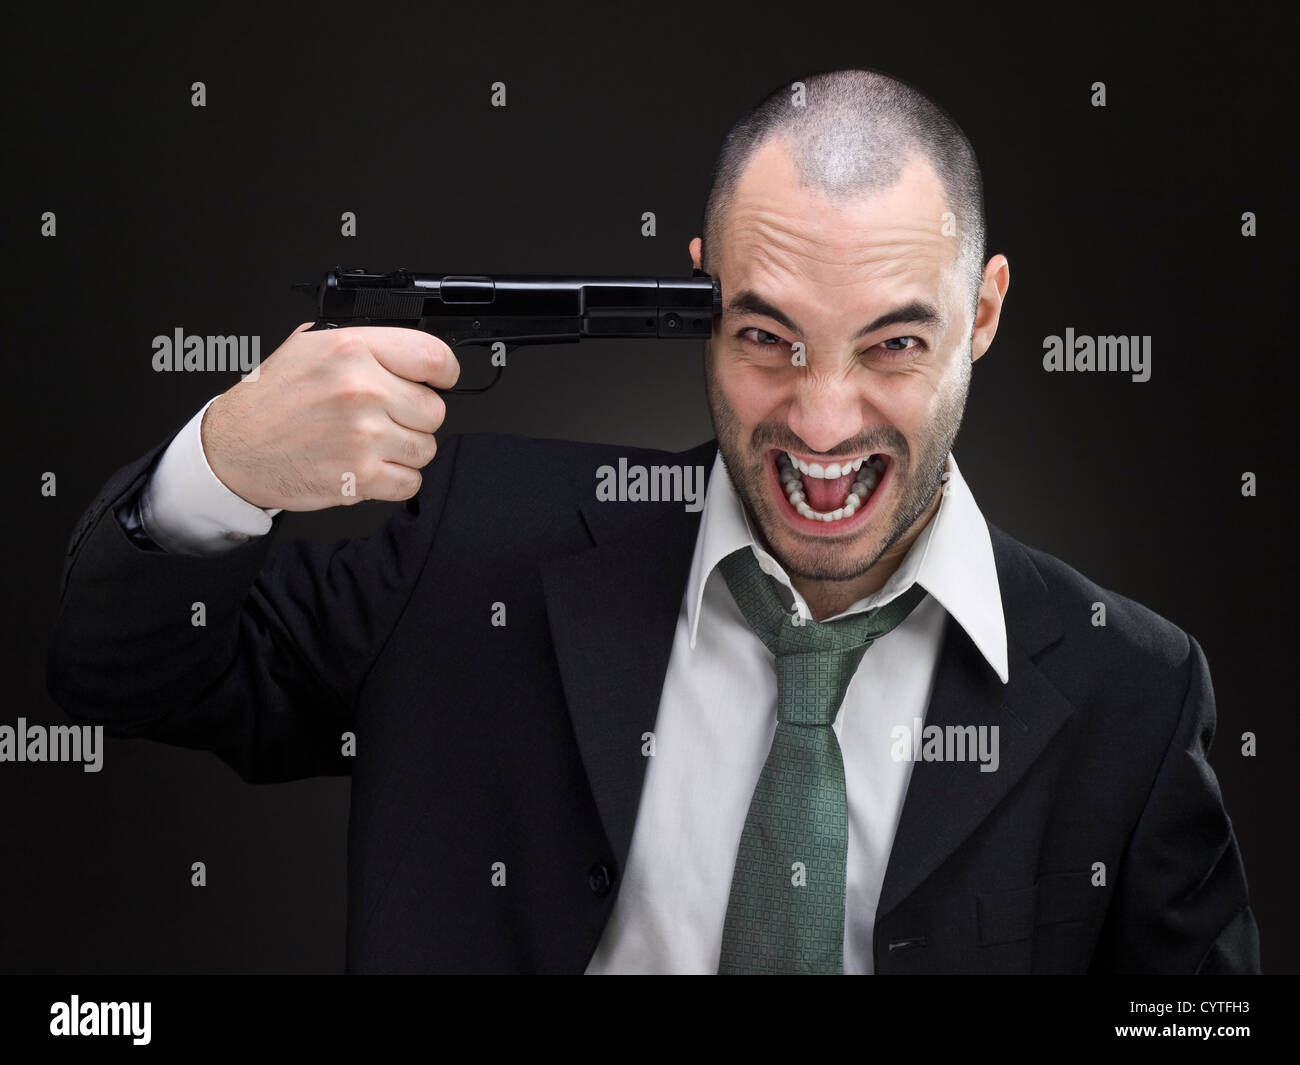 A desperate businessman attempts to commit suicide. - Stock Image